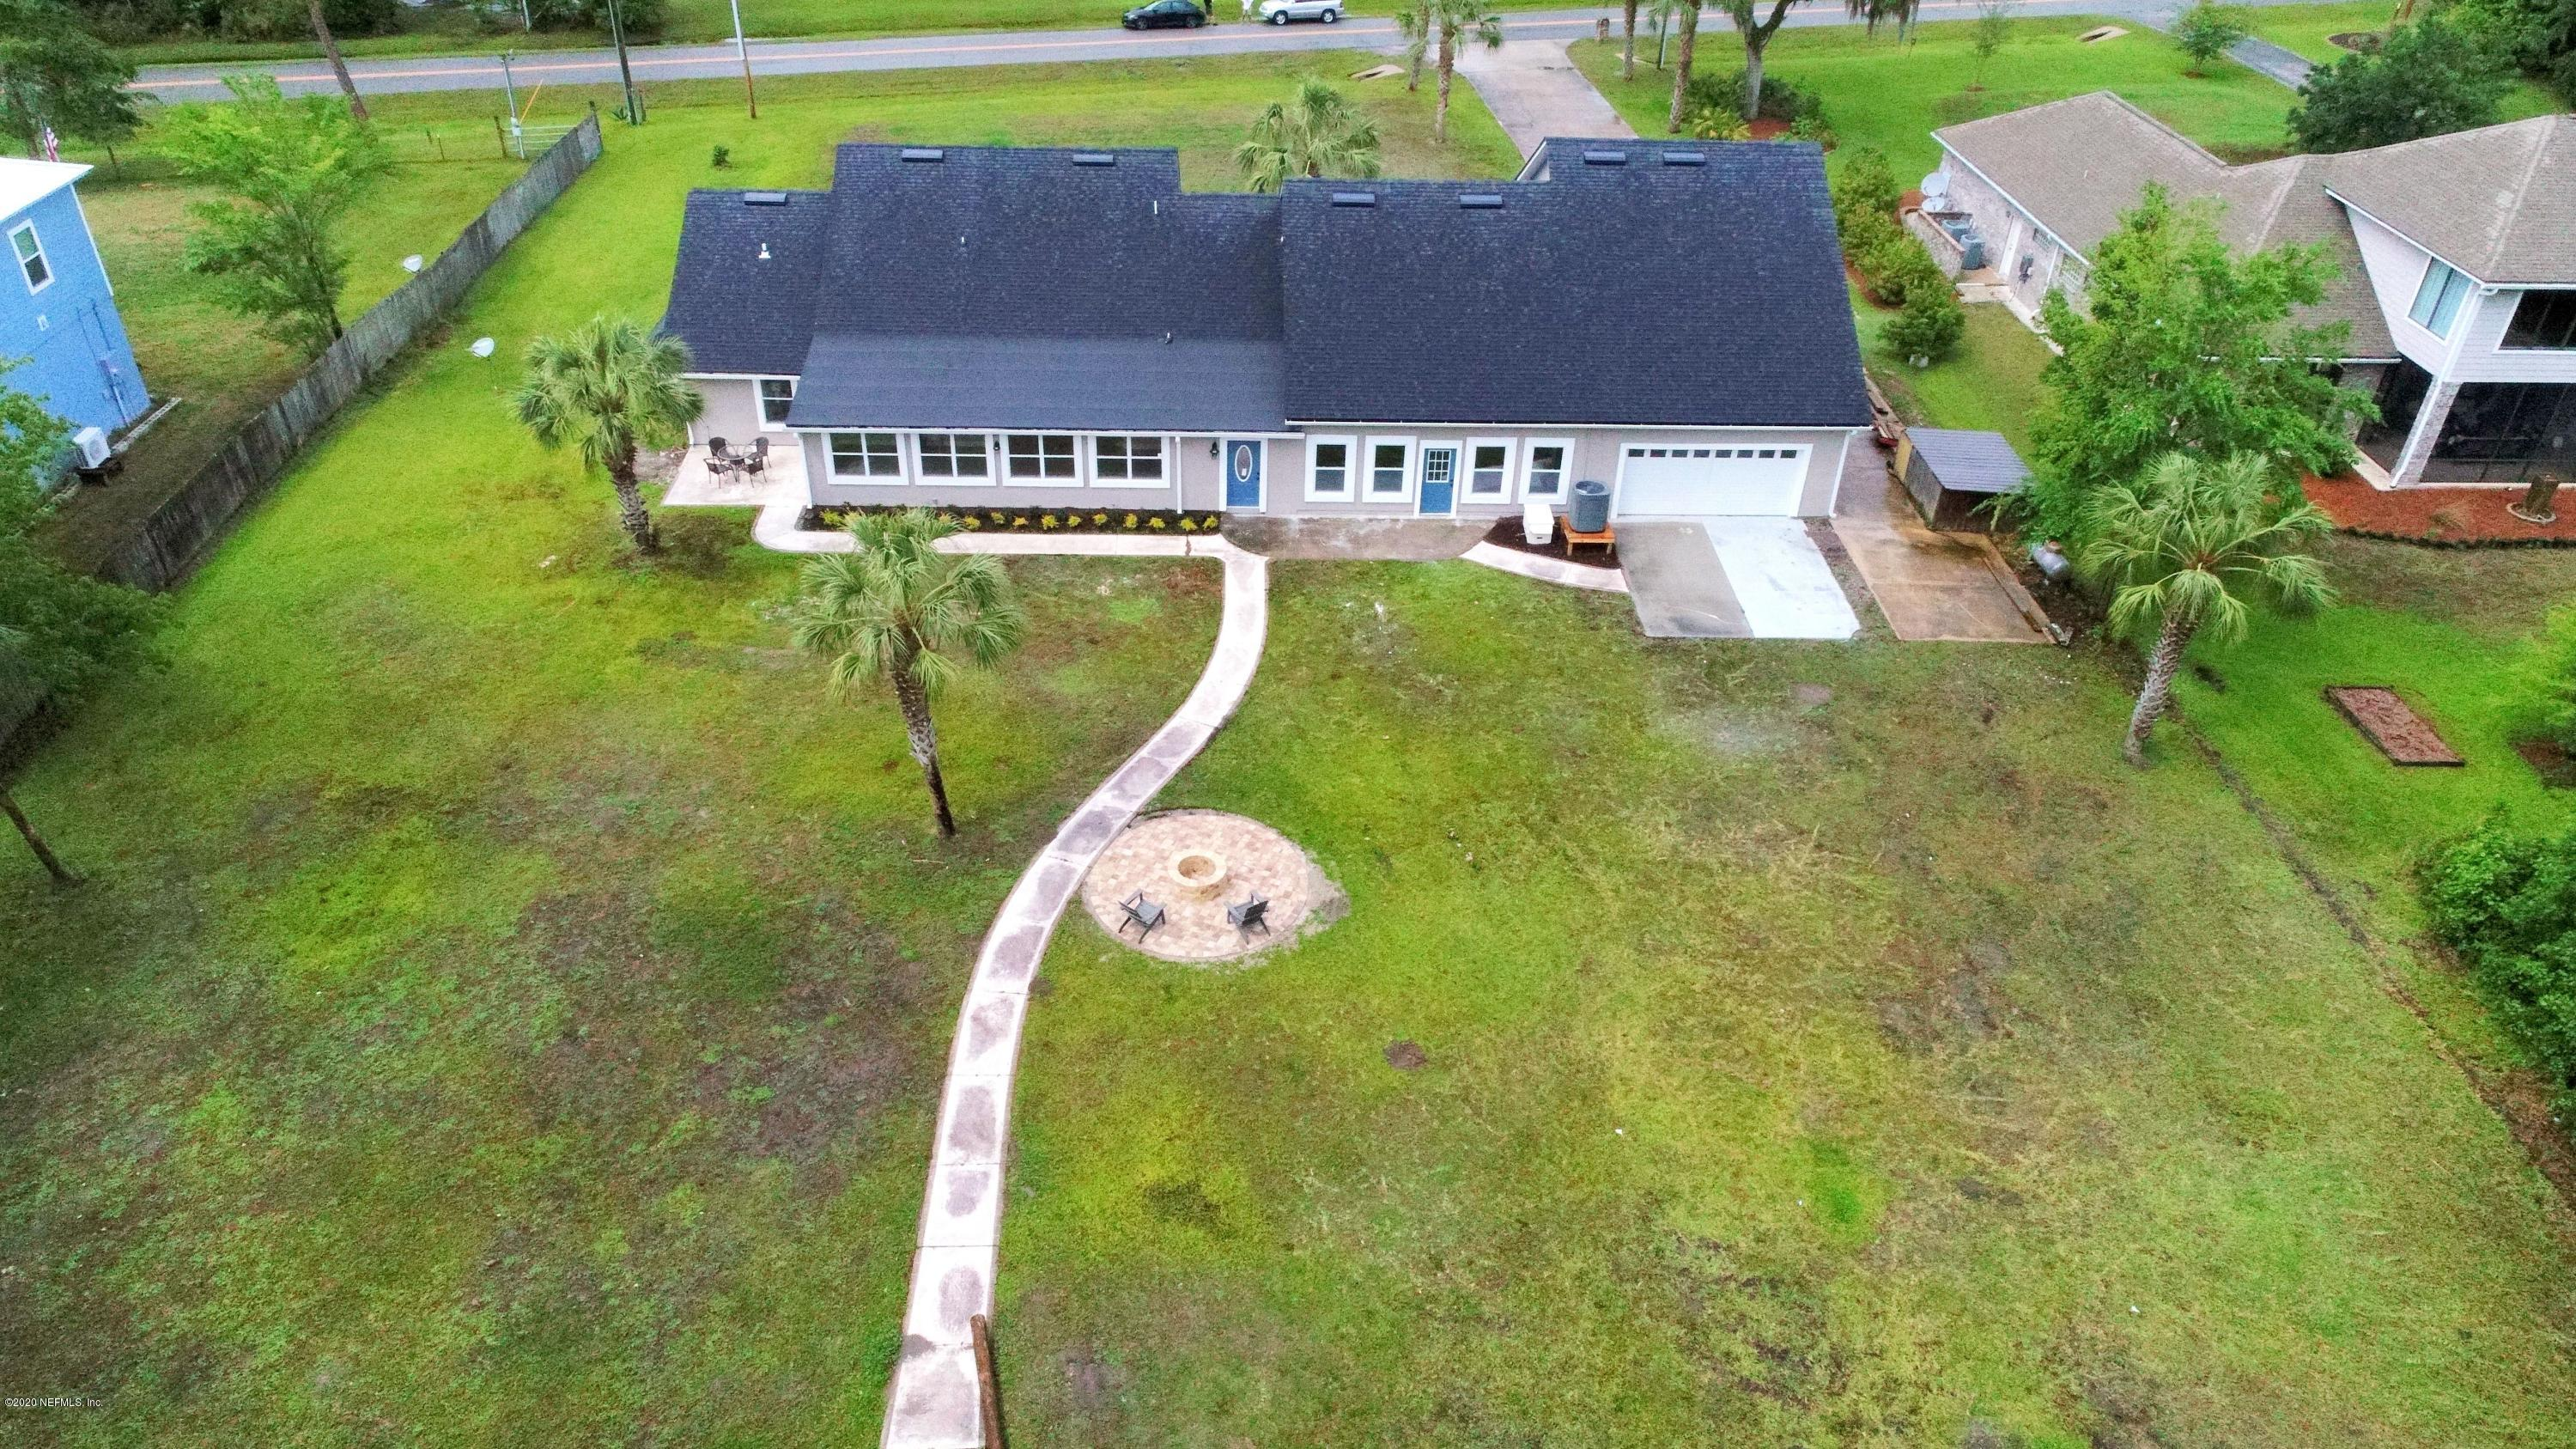 167 WILLIAMS PARK, GREEN COVE SPRINGS, FLORIDA 32043, 3 Bedrooms Bedrooms, ,2 BathroomsBathrooms,Residential,For sale,WILLIAMS PARK,1049399